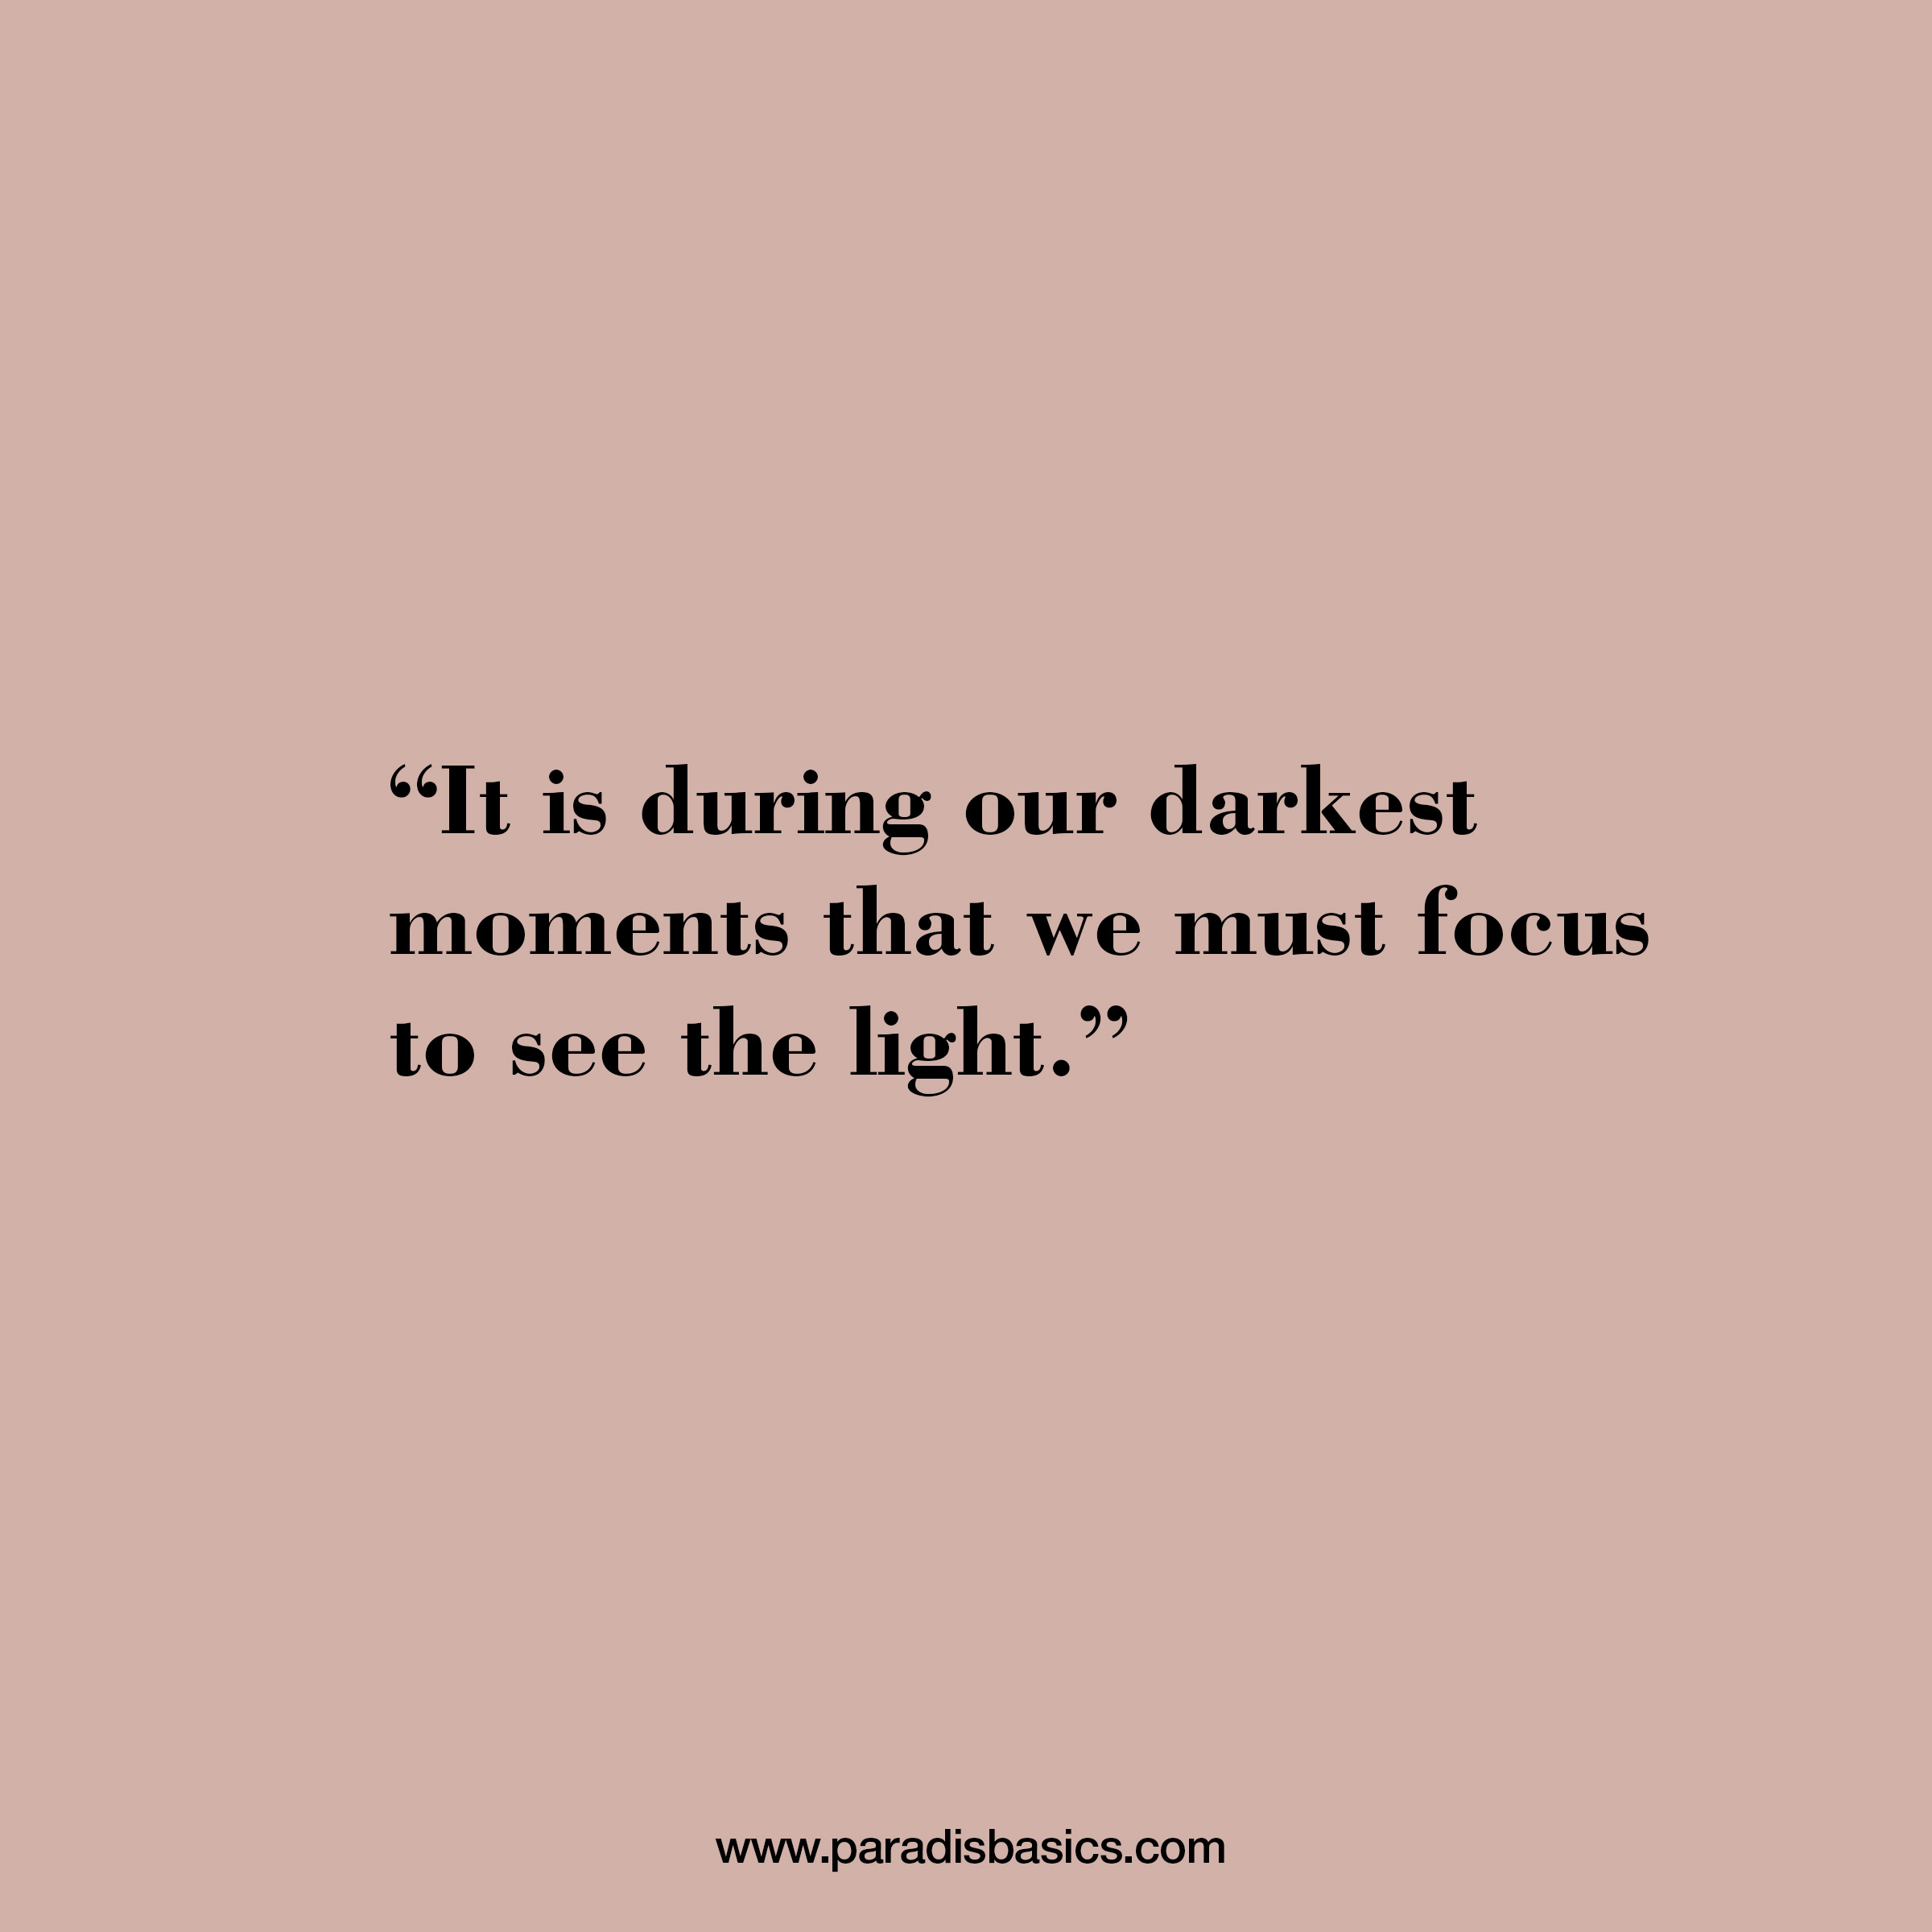 It is during our darkest moments that we must focus to see the light